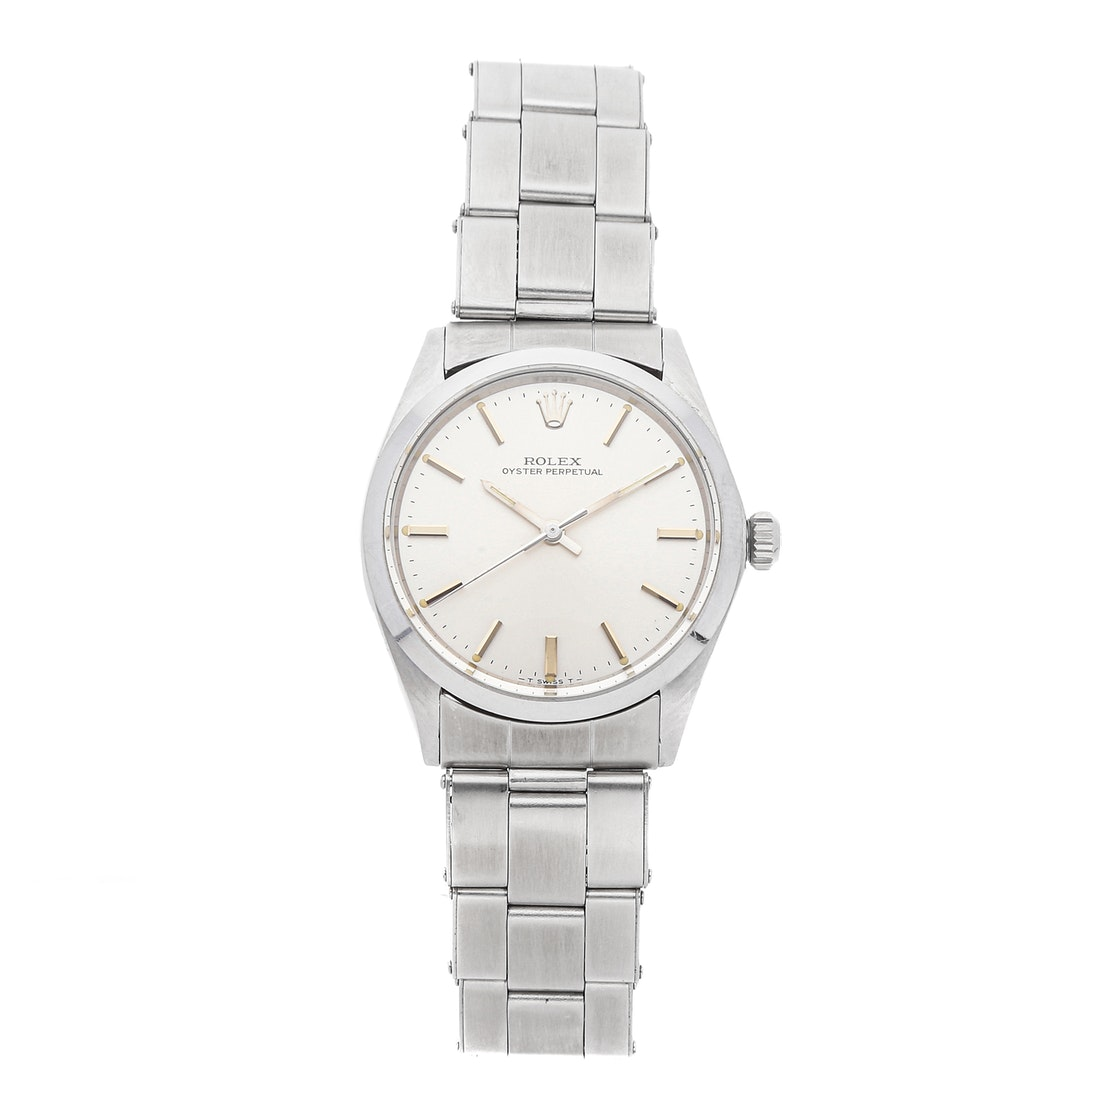 Rolex Oyster Perpetual Air-King Vintage 5500